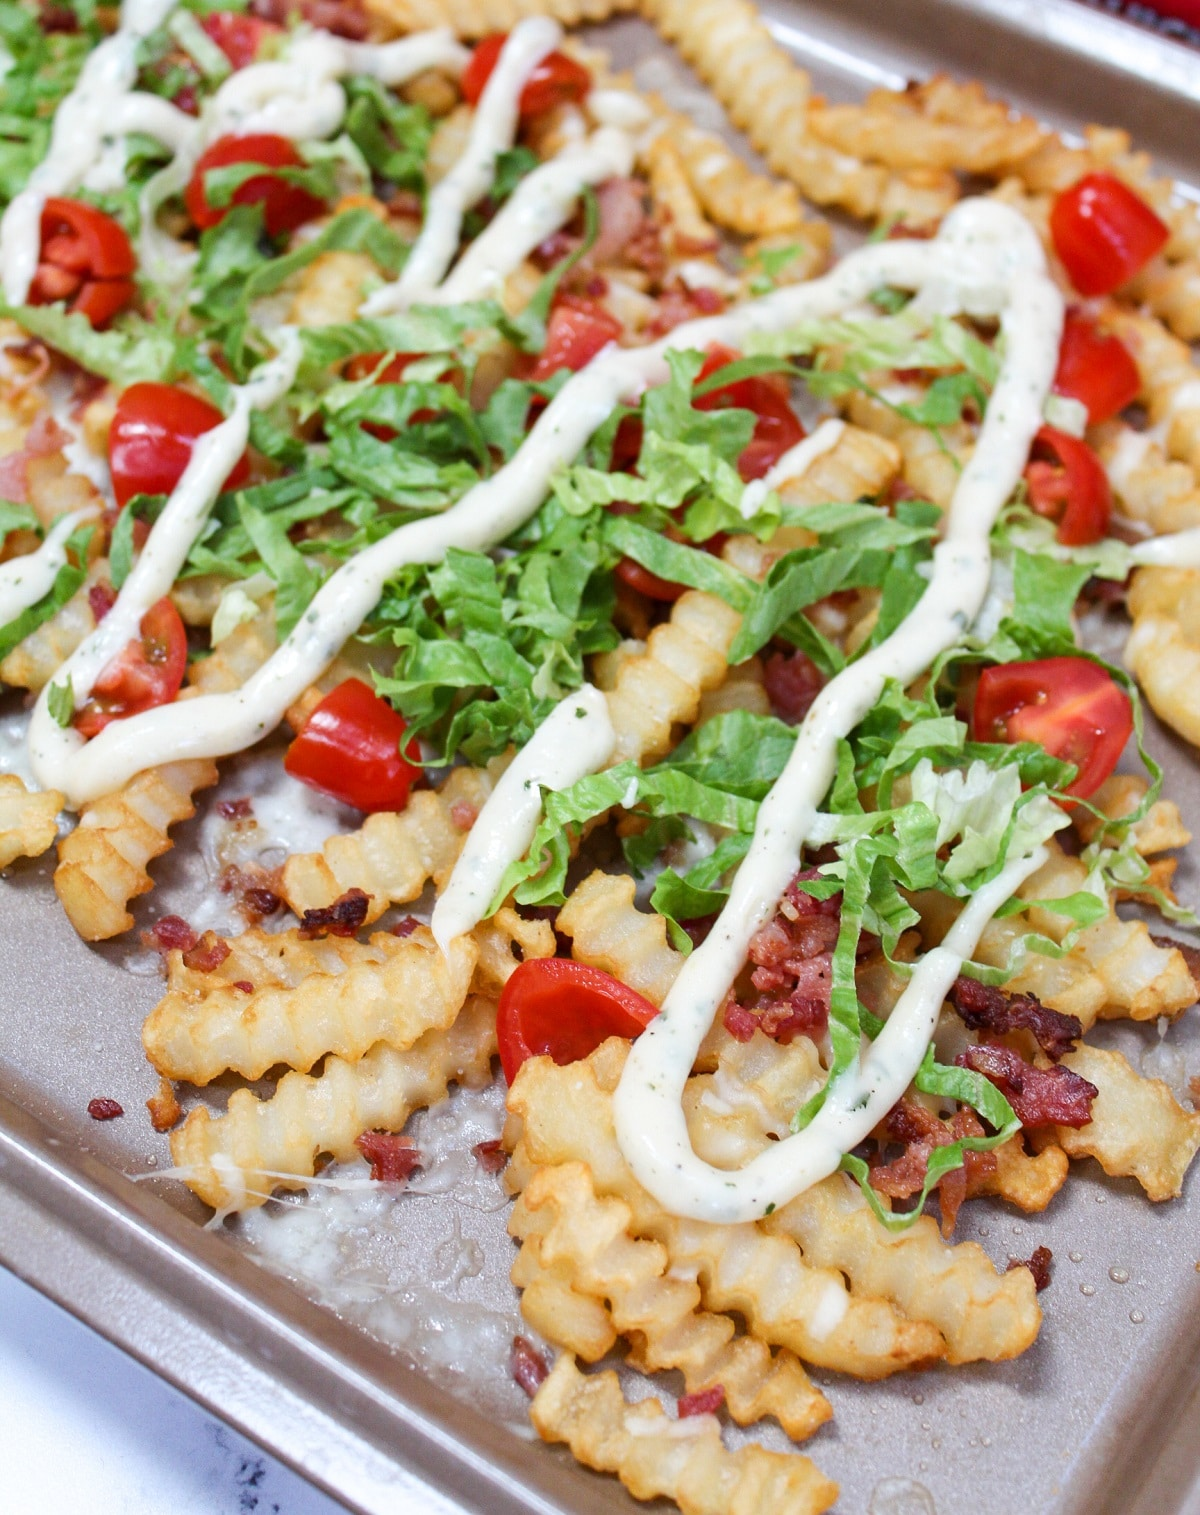 completed blt fries on tray